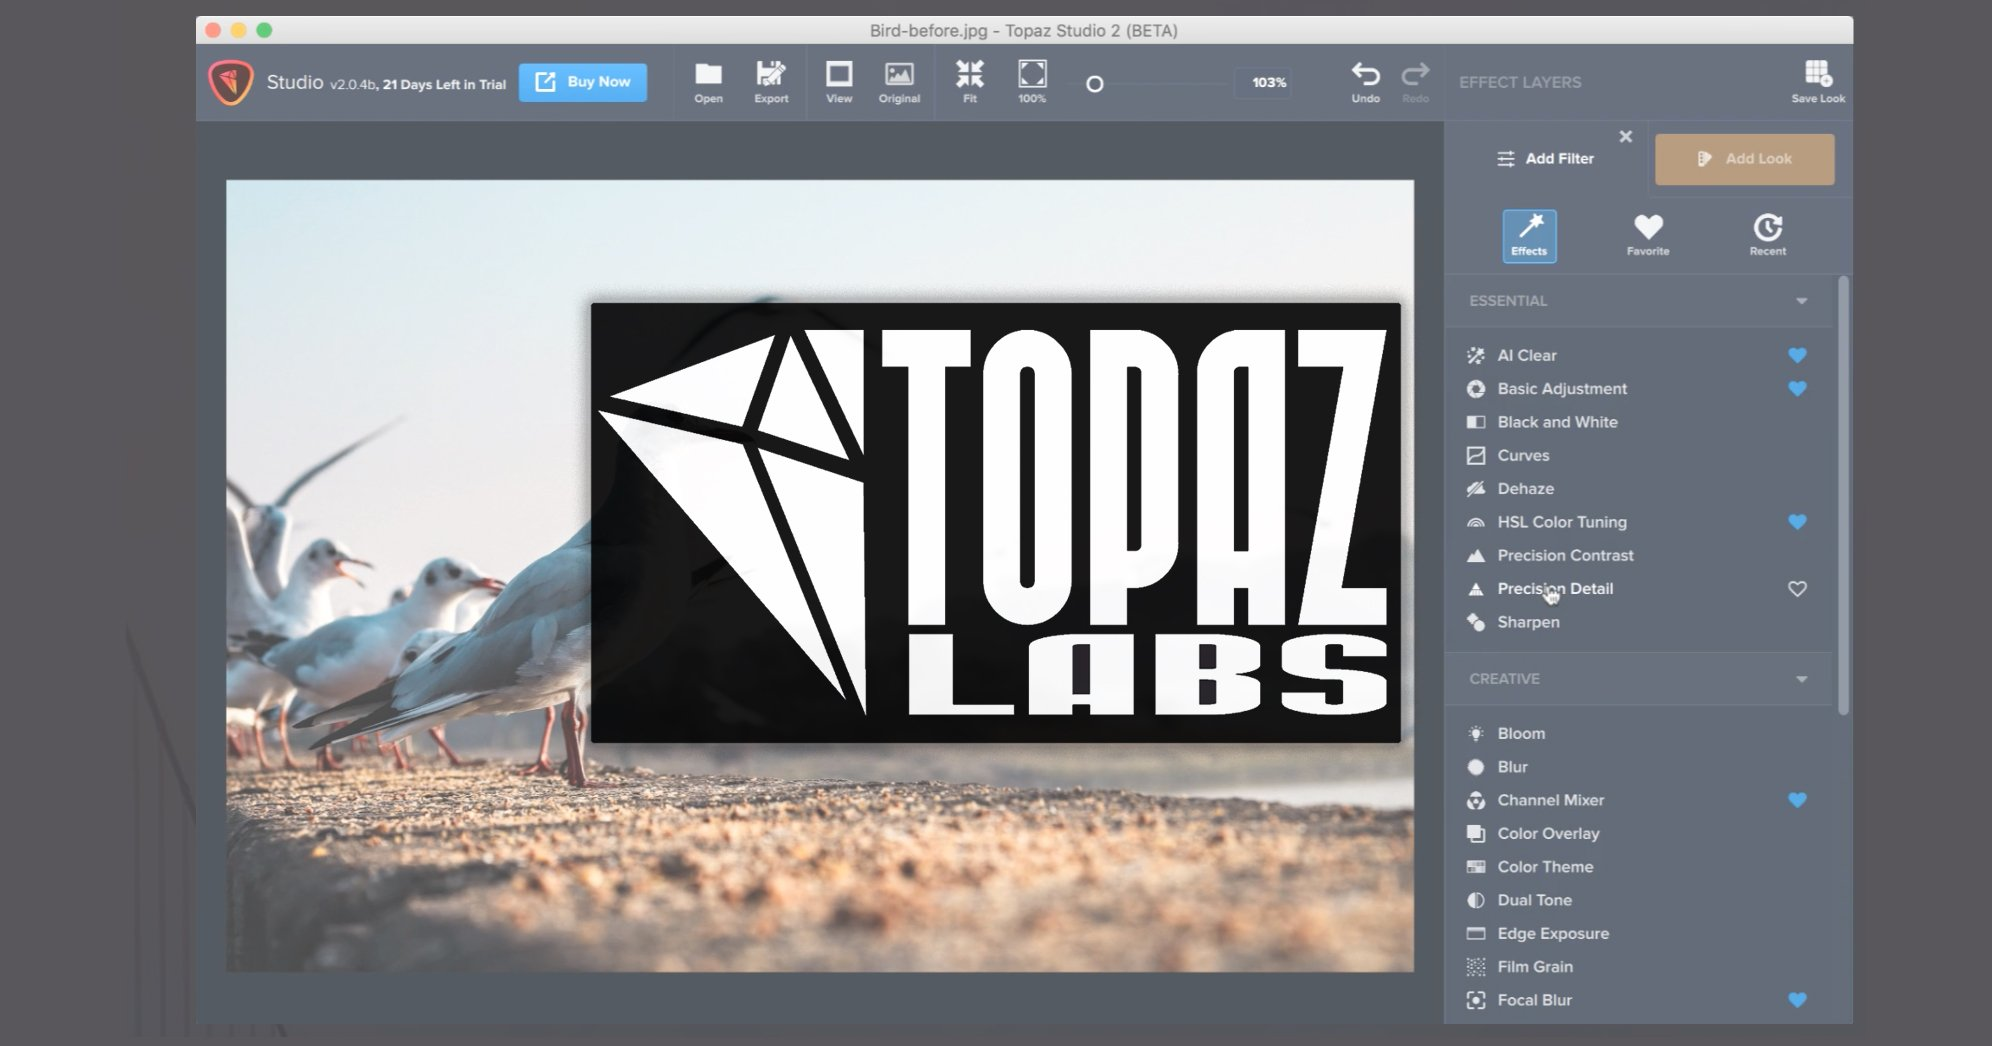 Topaz Labs Says It Will Start Charging for Product Updates, Sparks Outrage